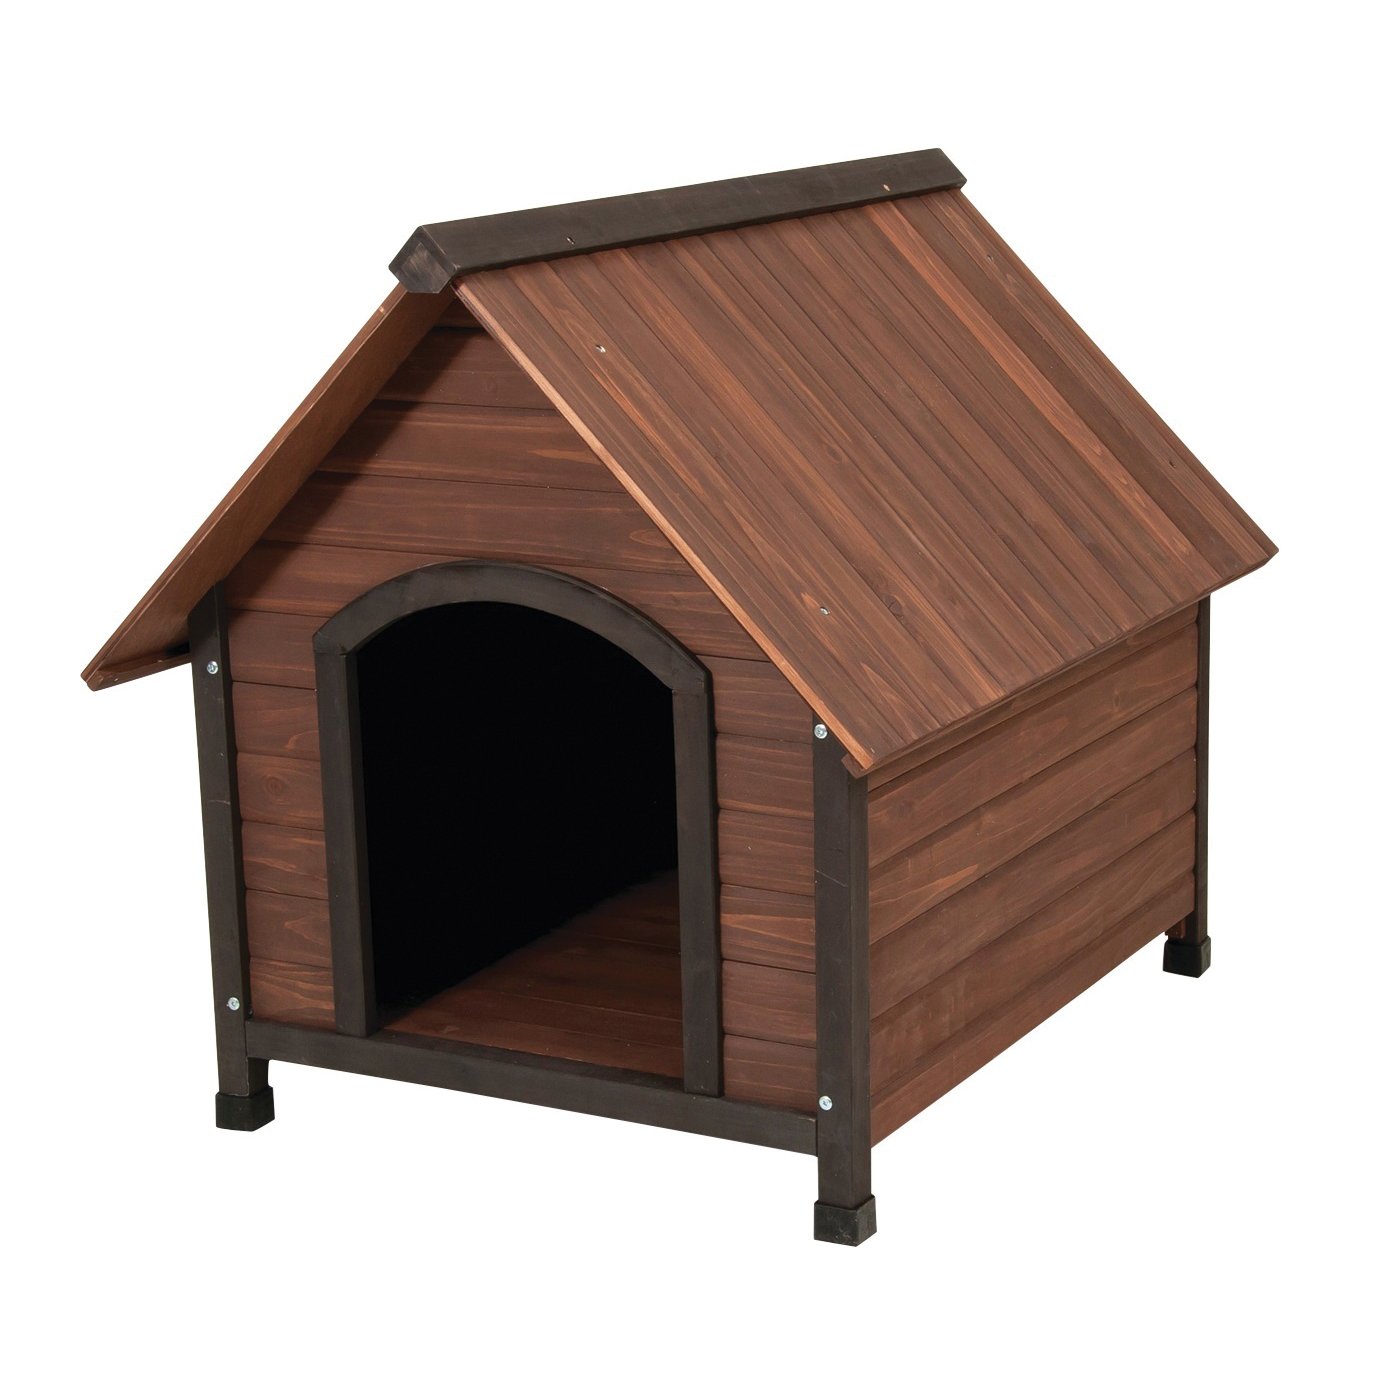 Picture of Aspenpet Ruff Hauz 25038 Dog House, 38-1/2 in OAL, 31 in OAW, 34 in OAH, Wood, Dark Brown